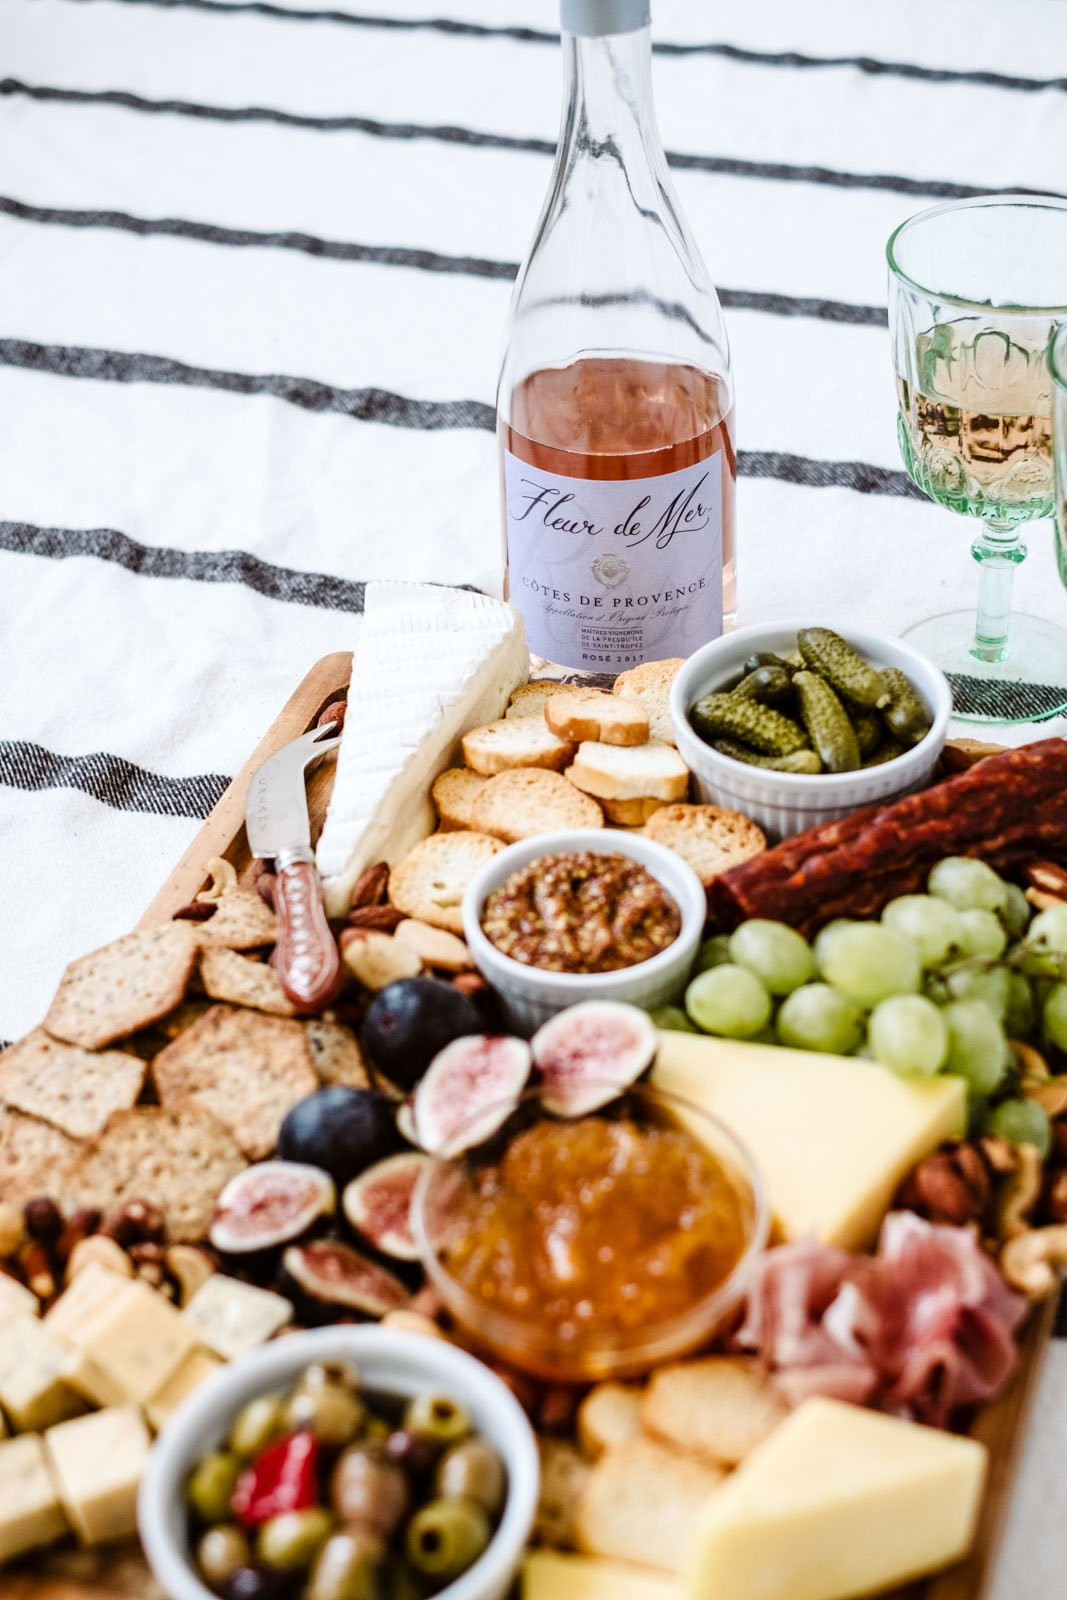 charcuterie board next to a bottle of rosé